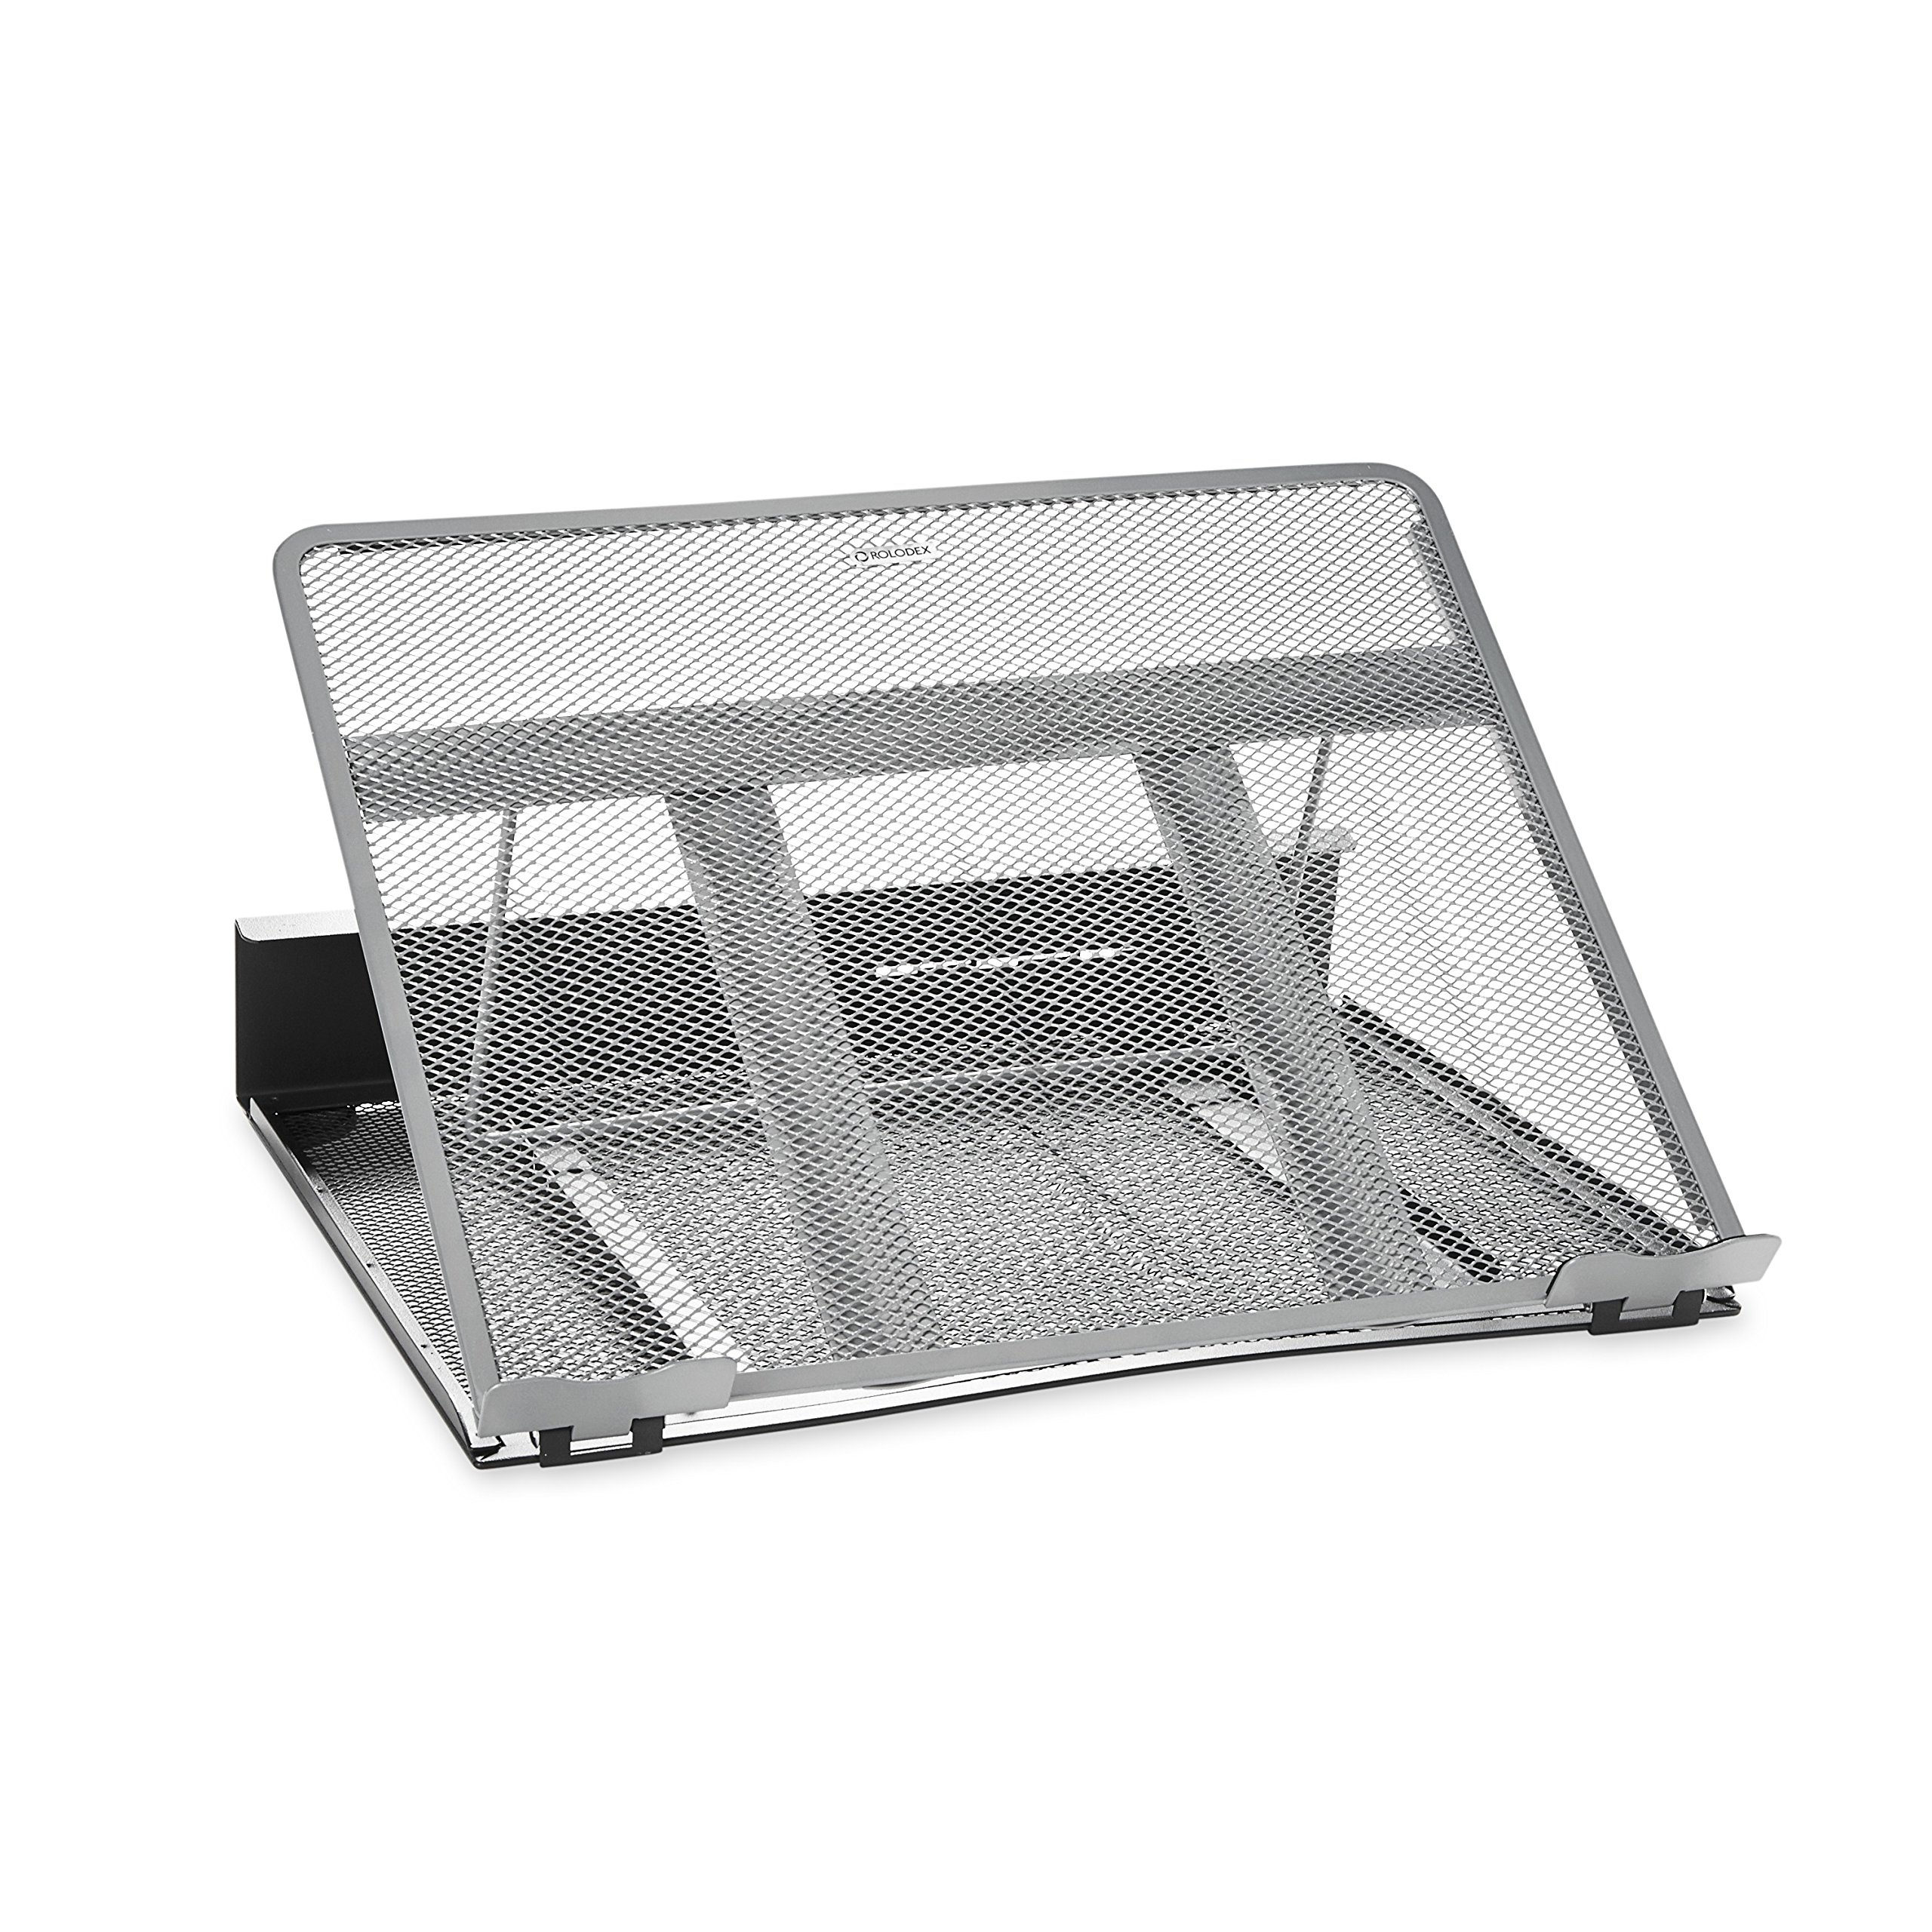 Rolodex Mesh Workspace Laptop Stand, Black/Silver (82410) by Rolodex